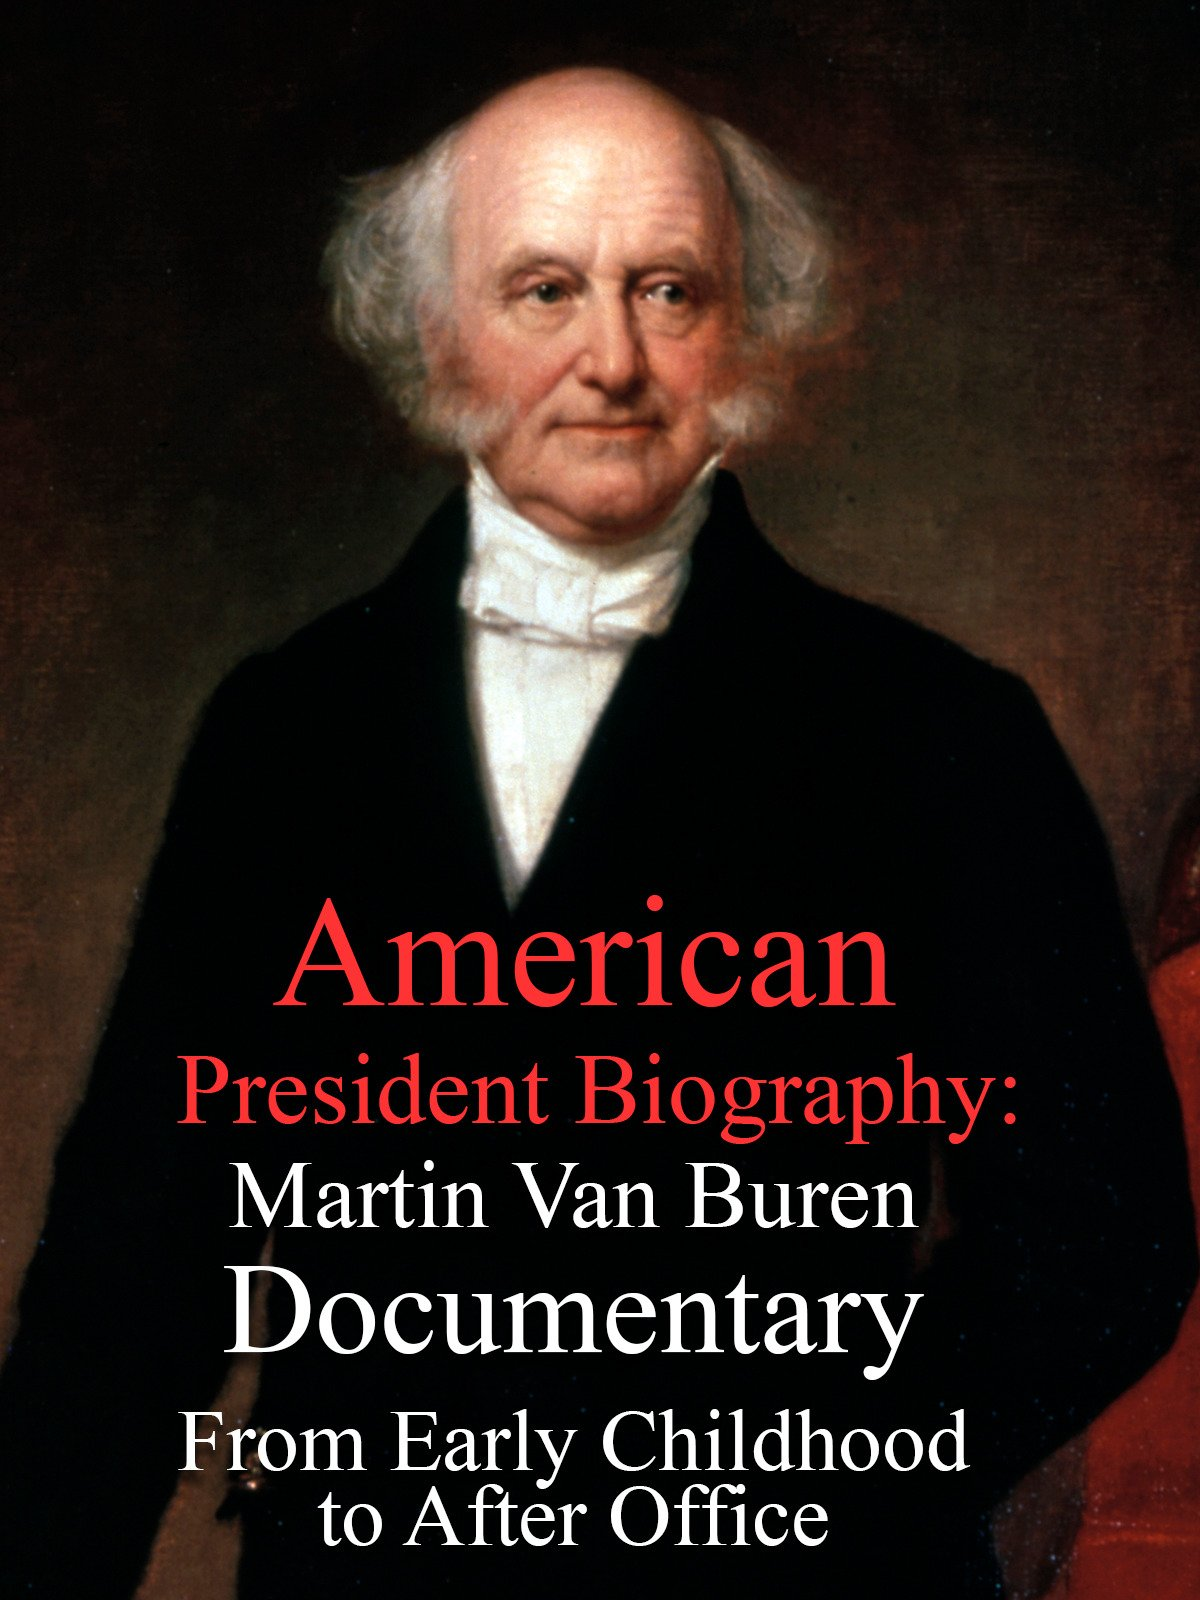 American President Biography: Martin Van Buren Documentary From Early Childhood to After Office